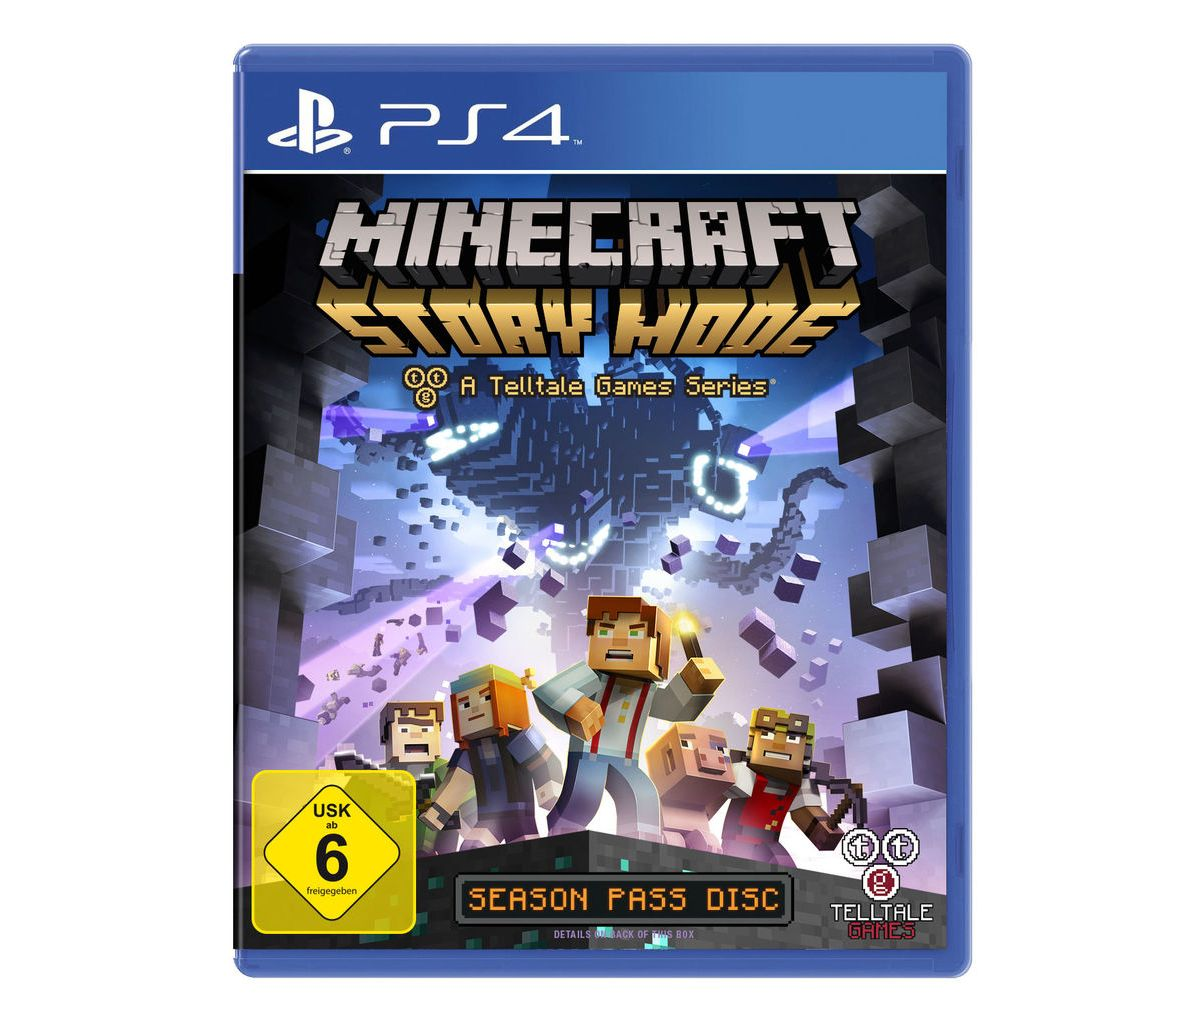 Telltale Games Playstation 4 - Spiel »Minecraft...